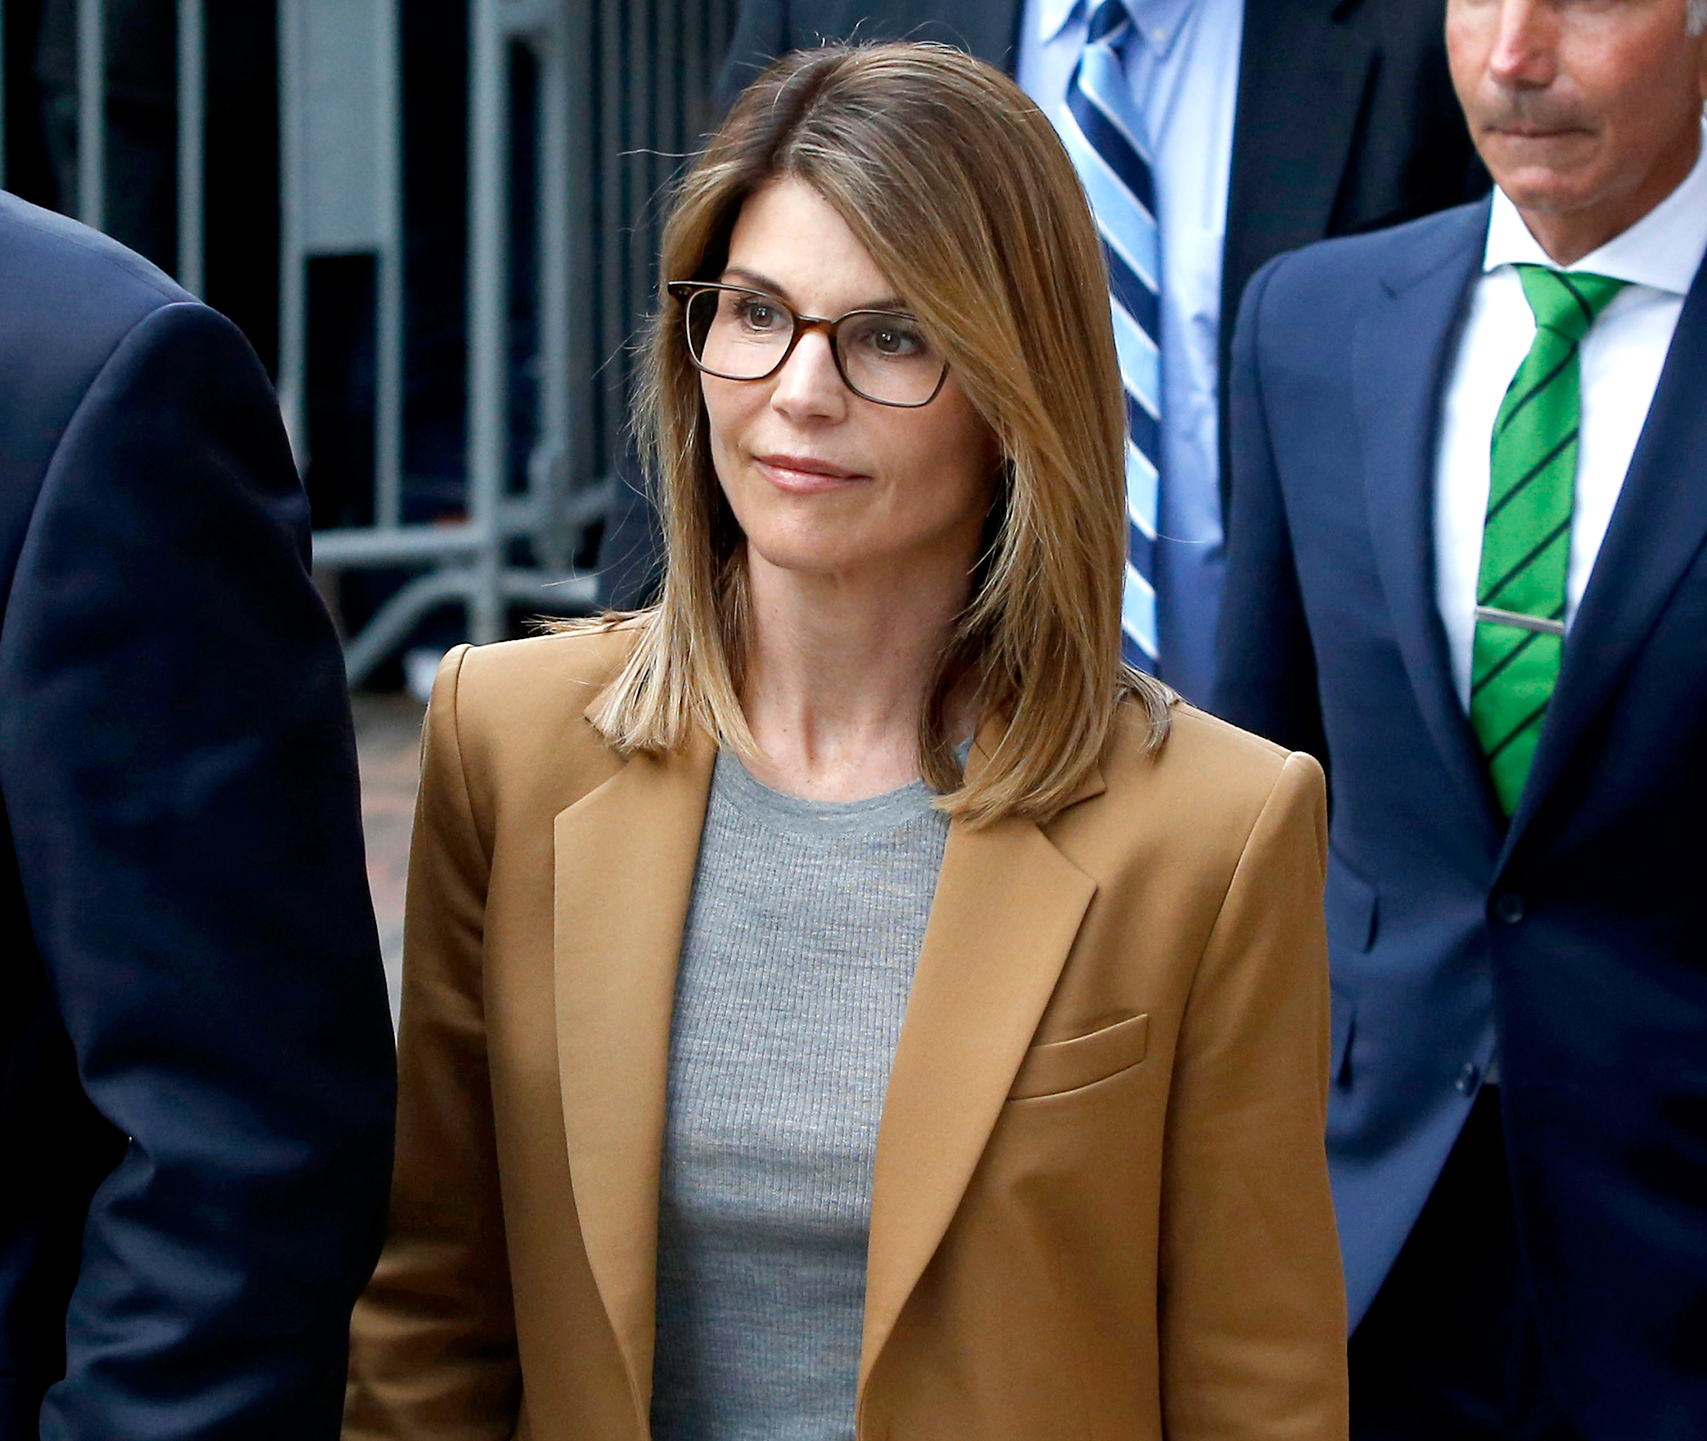 Lori-Loughlin-Faces-2-Year-Minimum-Prison-Sentence-in-College-Scandal